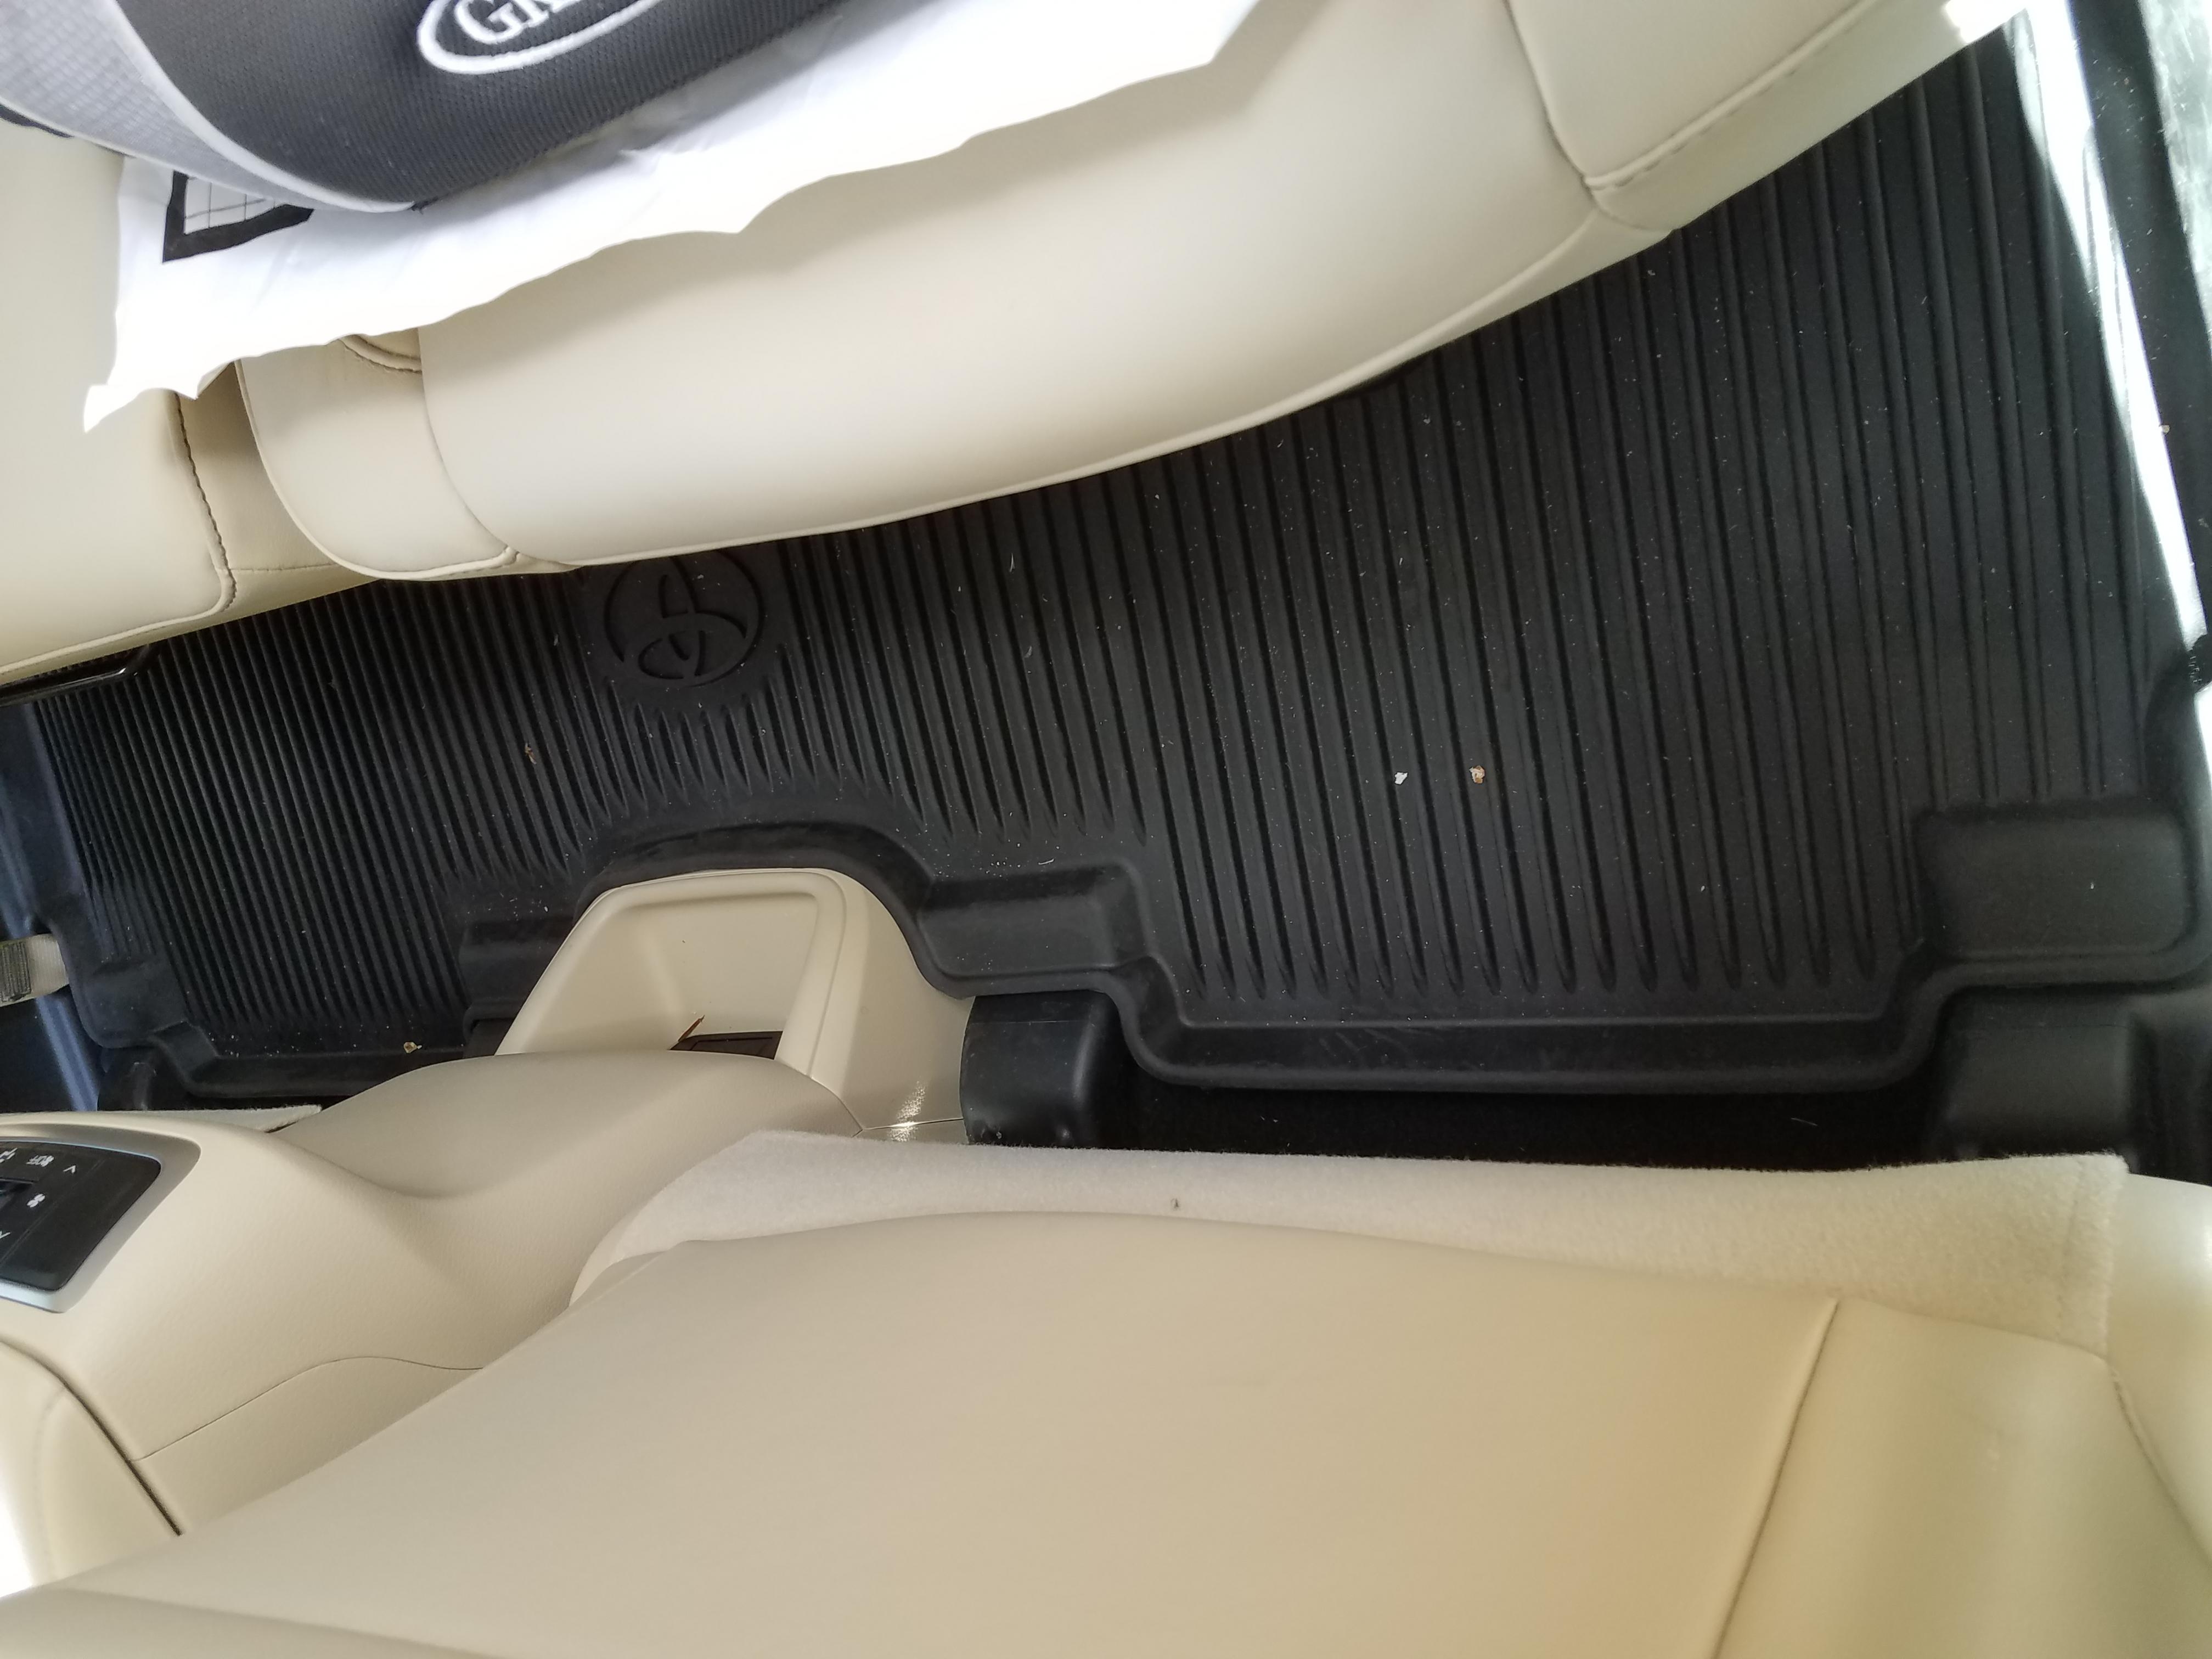 weathertech interior to laser pin mats completely your cars and suvs protection get front with fit vehicle line minivans floorliner back floor that custom measured are of for trucks the